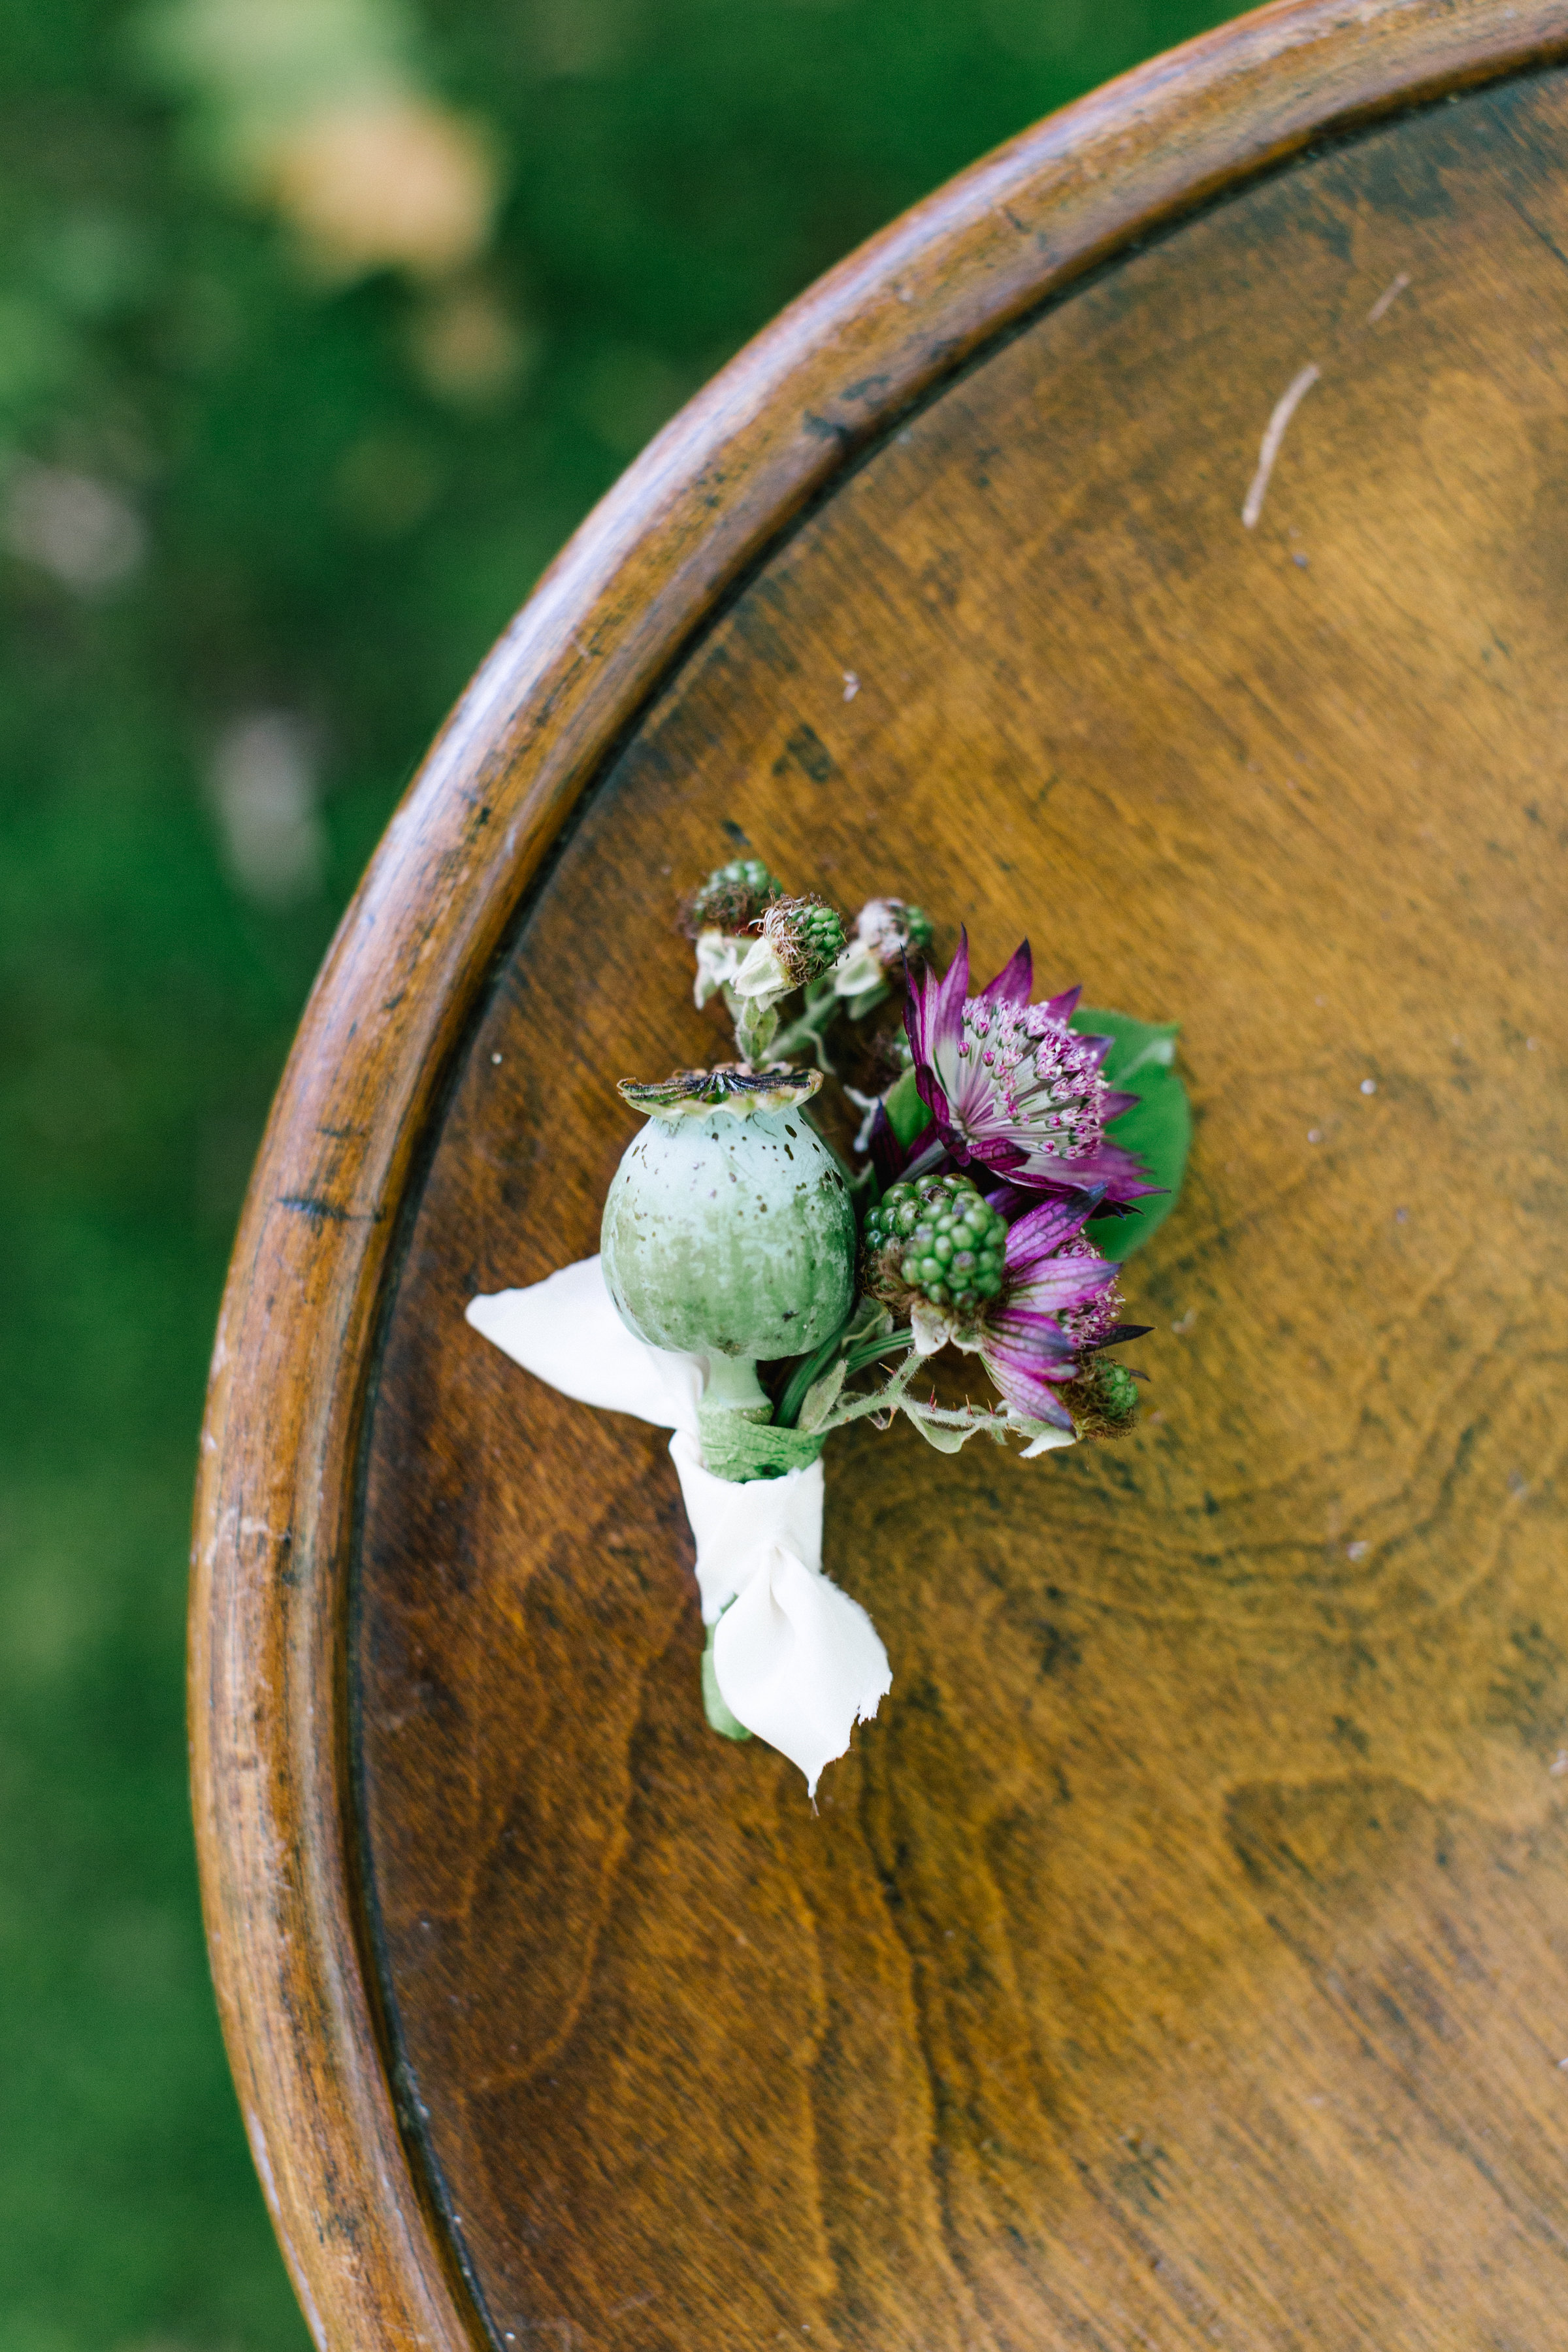 Allison_Hopperstad_Photography_Acowsay_Wedding_Bout.JPG